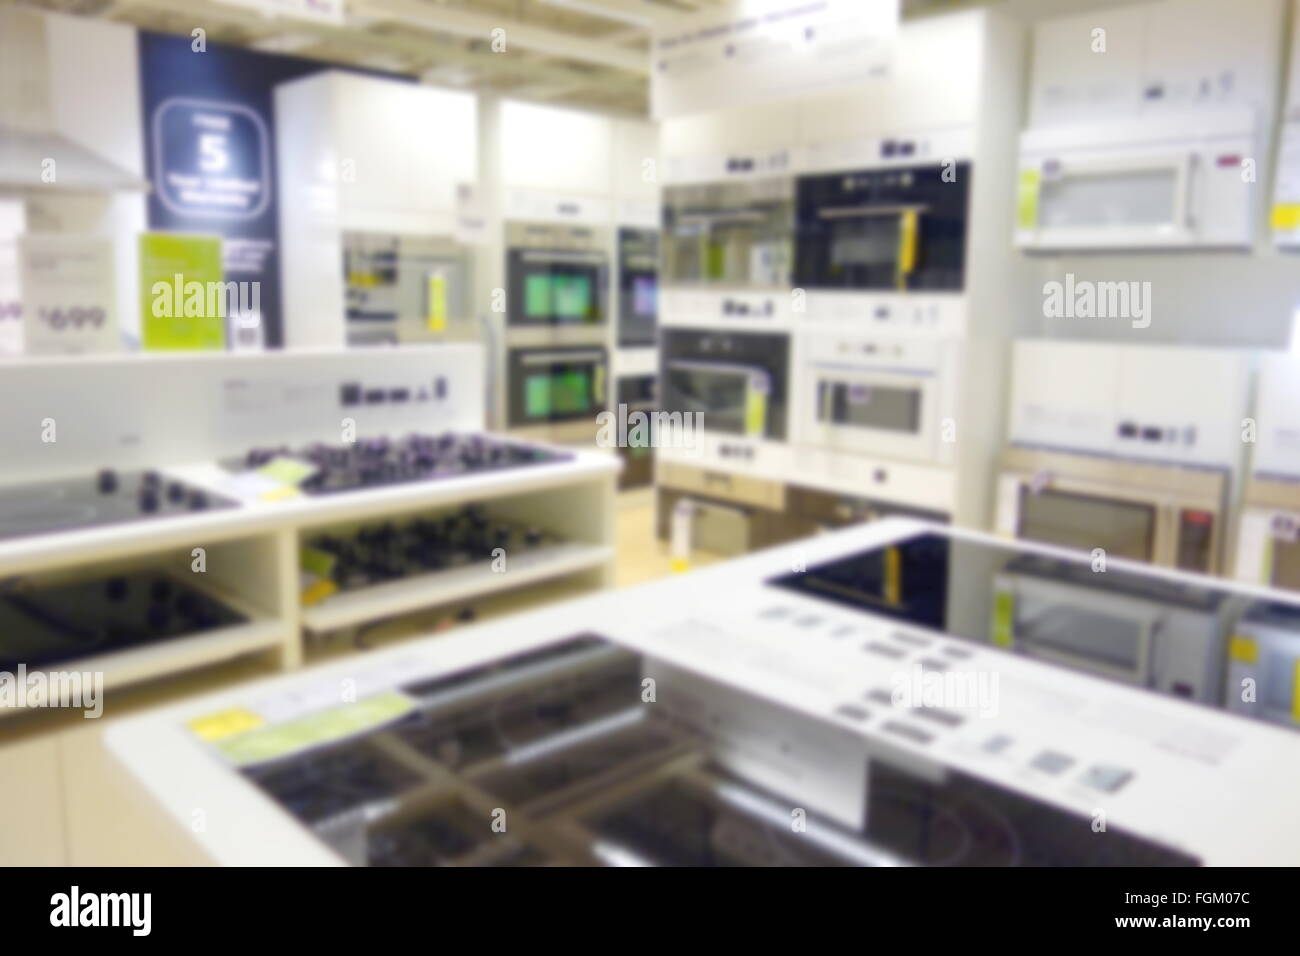 Blurred Kitchen Appliances Department At A Store